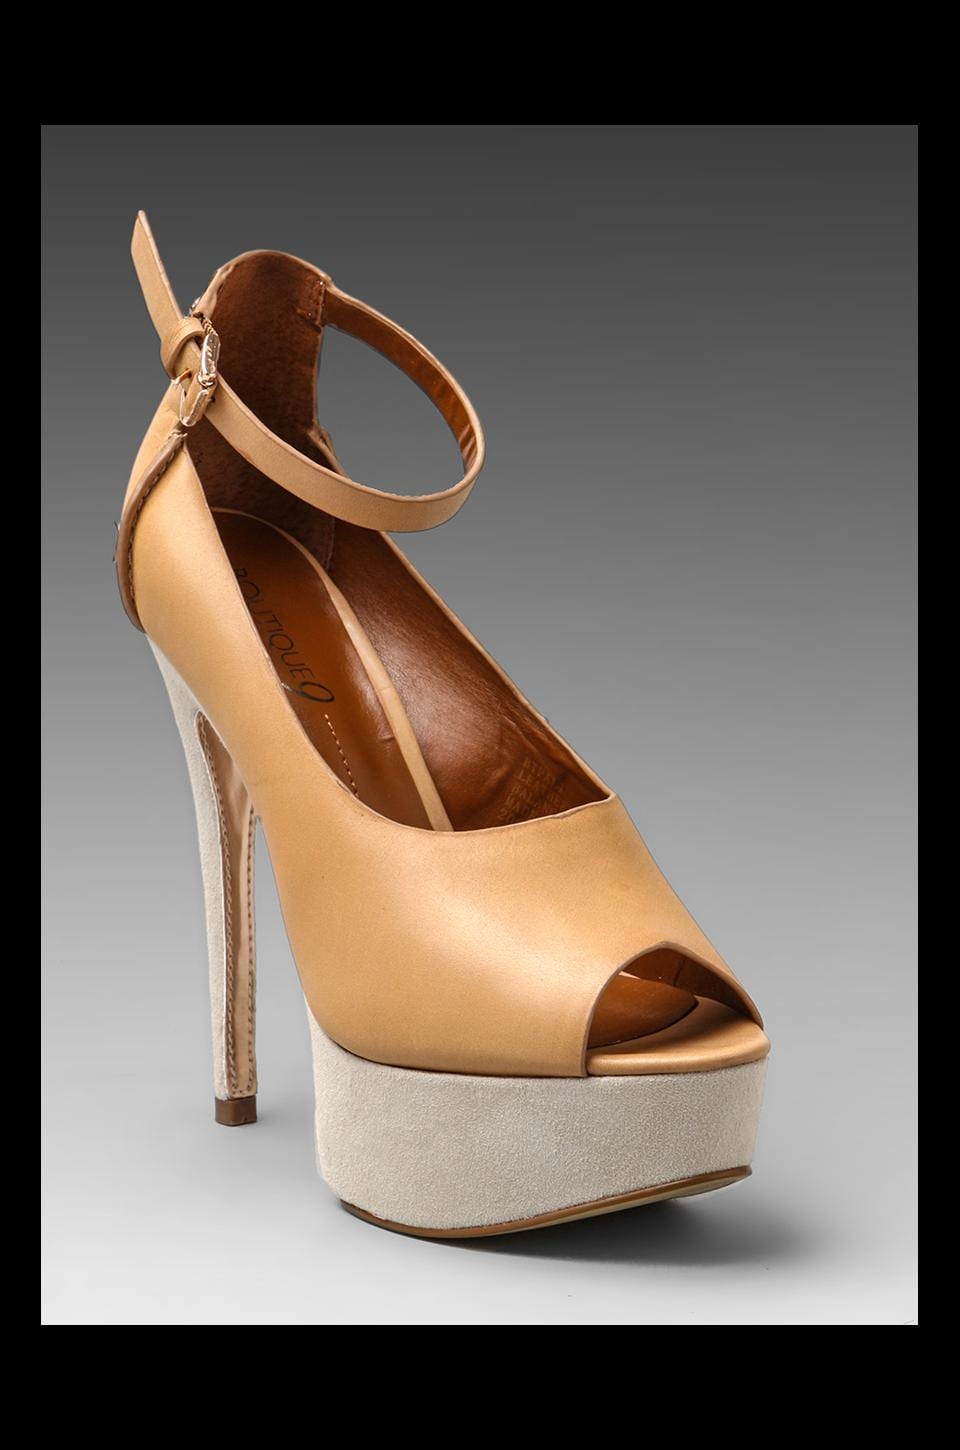 Boutique 9 Pali Peep Toe Pump in Tan/White